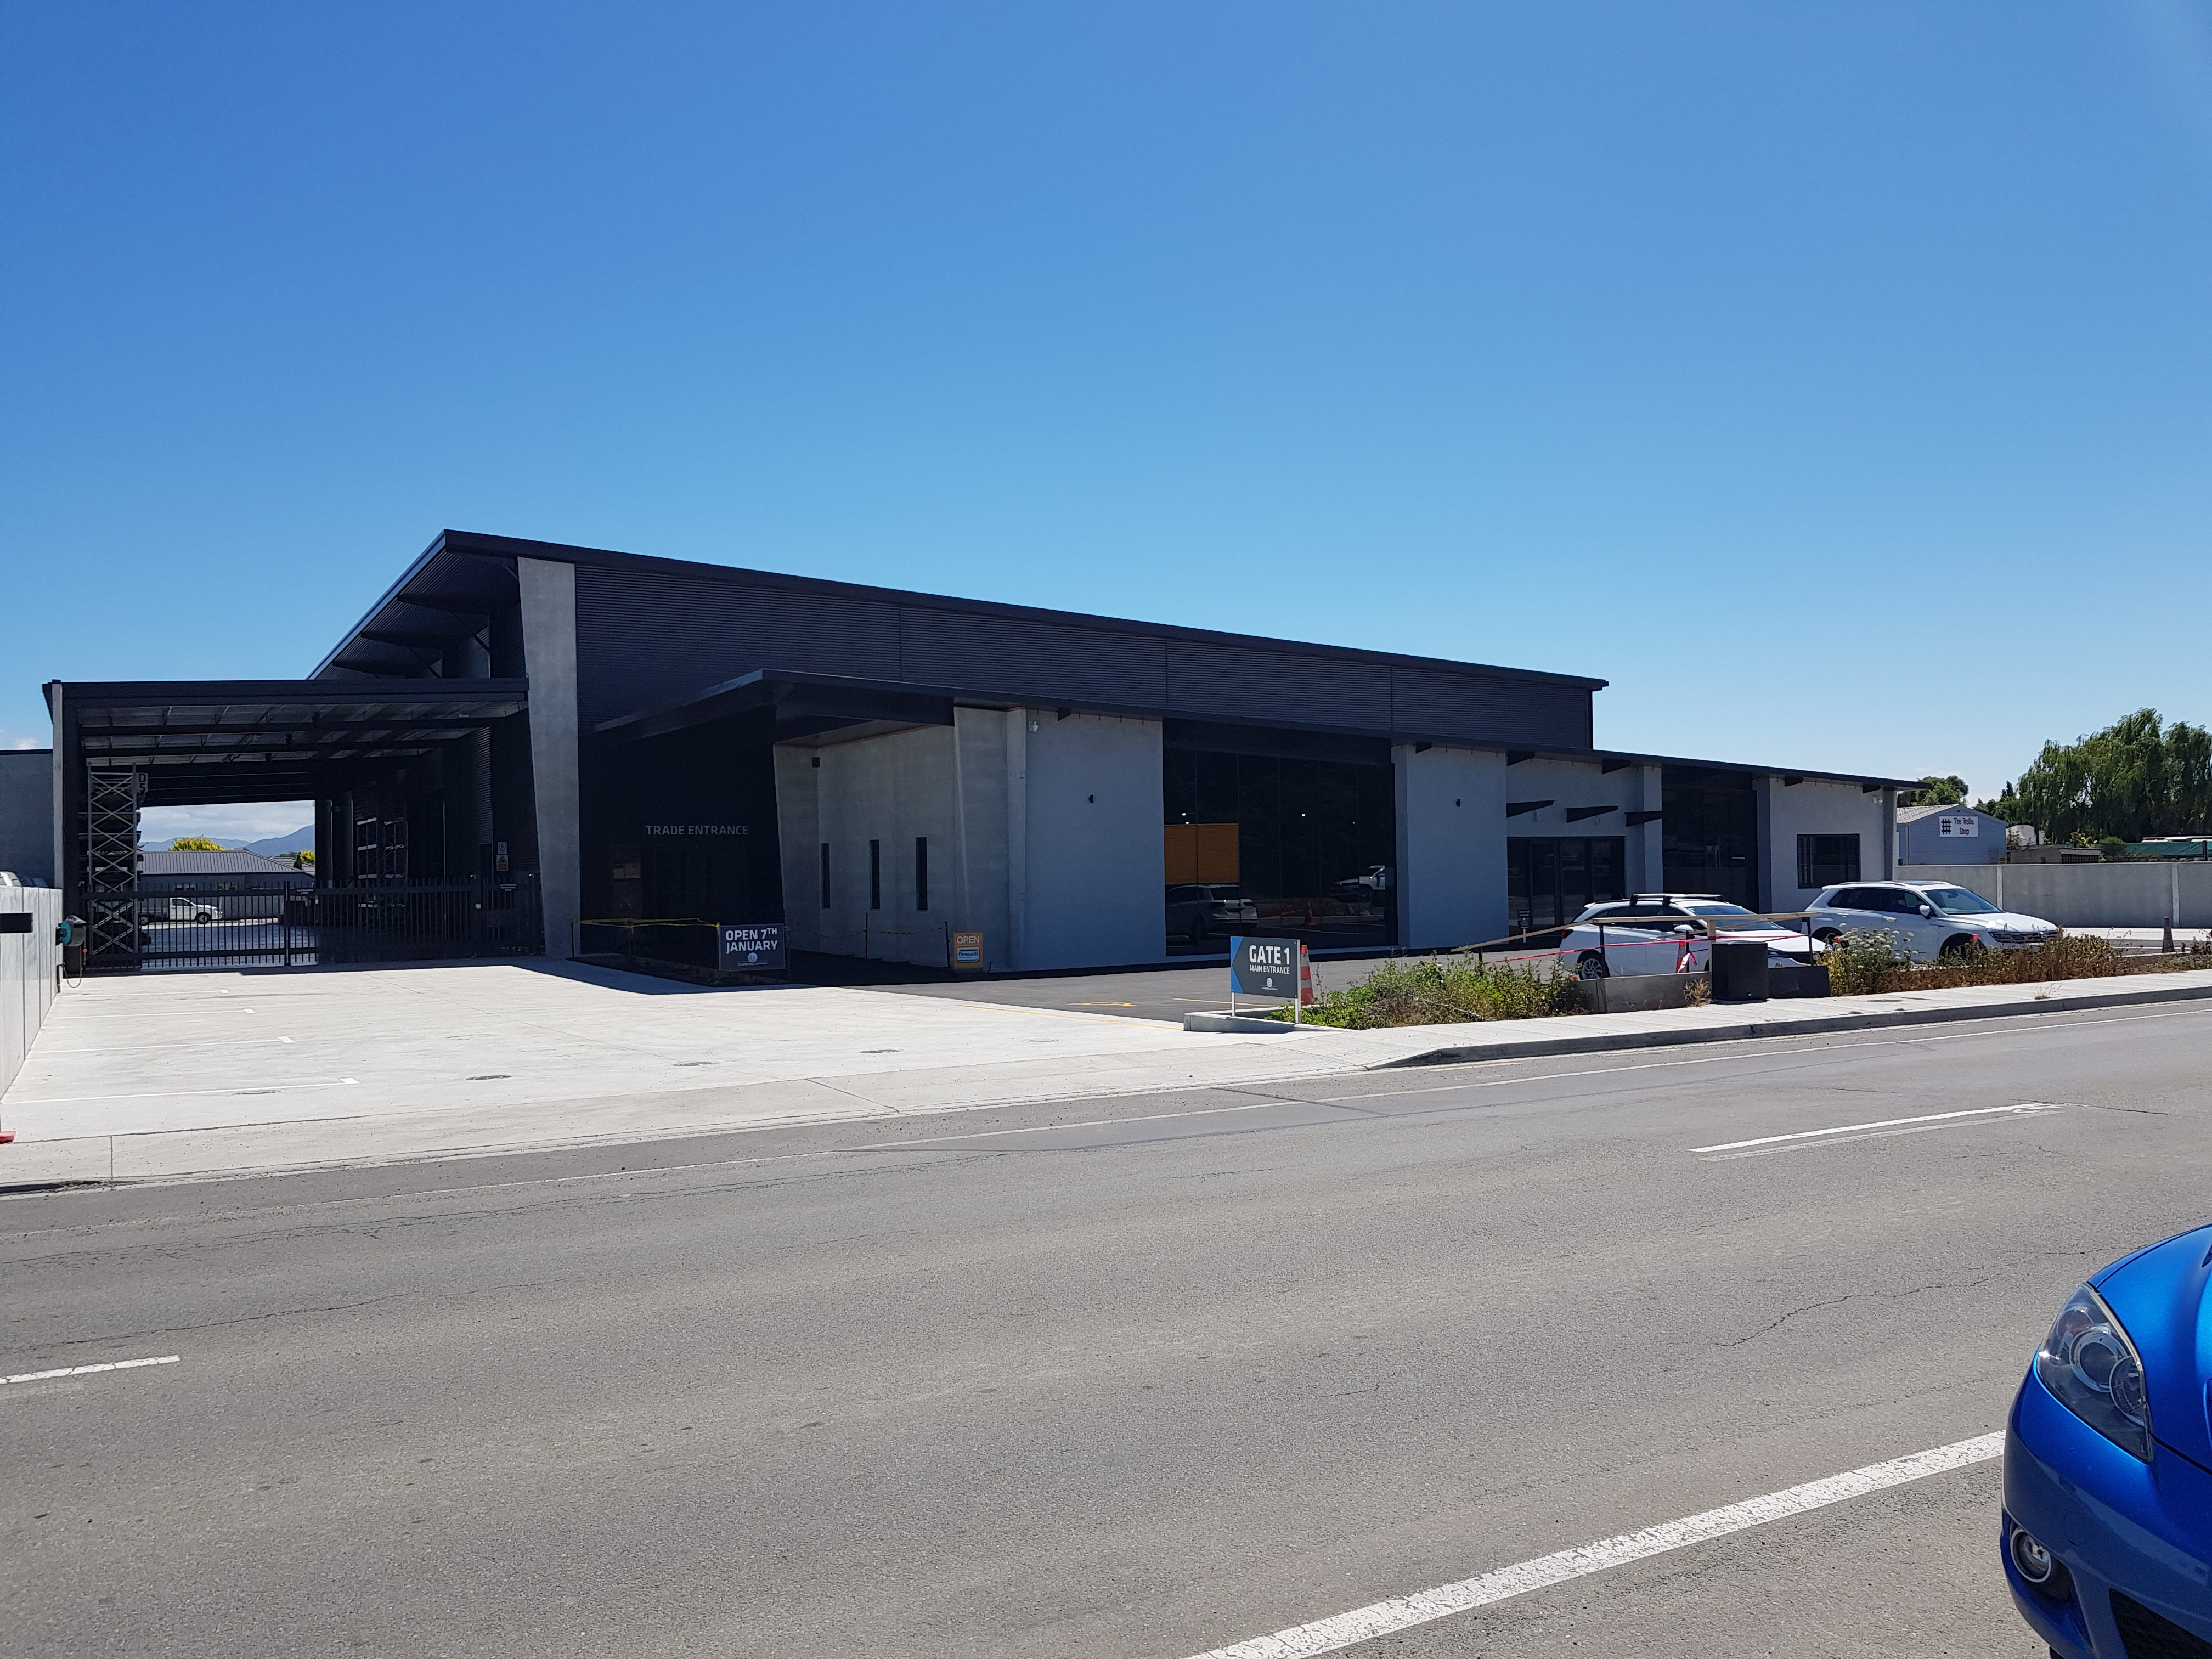 Business facility with fibre cement work